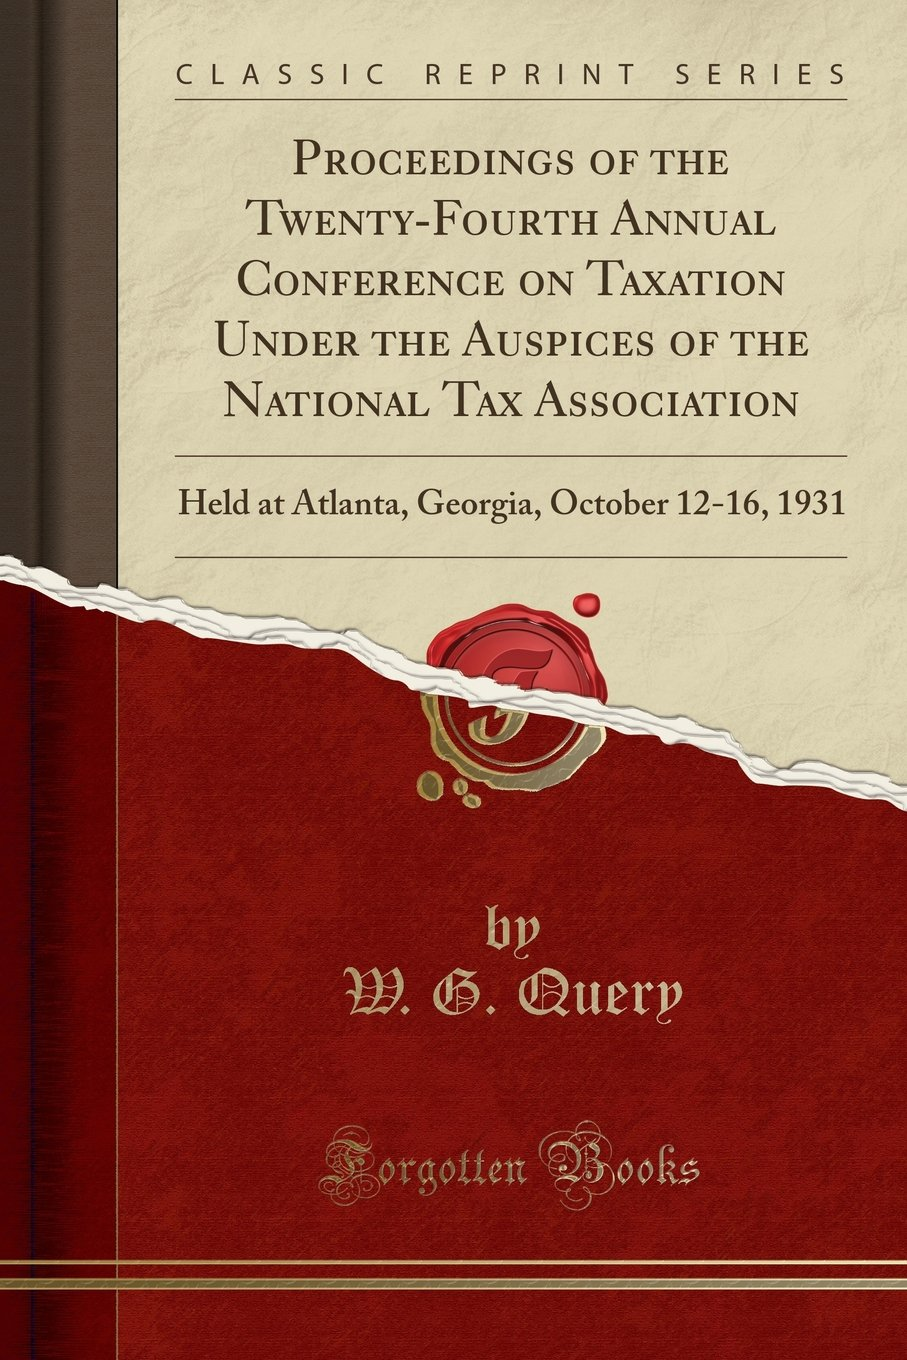 Proceedings of the Twenty-Fourth Annual Conference on Taxation Under the Auspices of the National Tax Association: Held at Atlanta, Georgia, October 12-16, 1931 (Classic Reprint) PDF